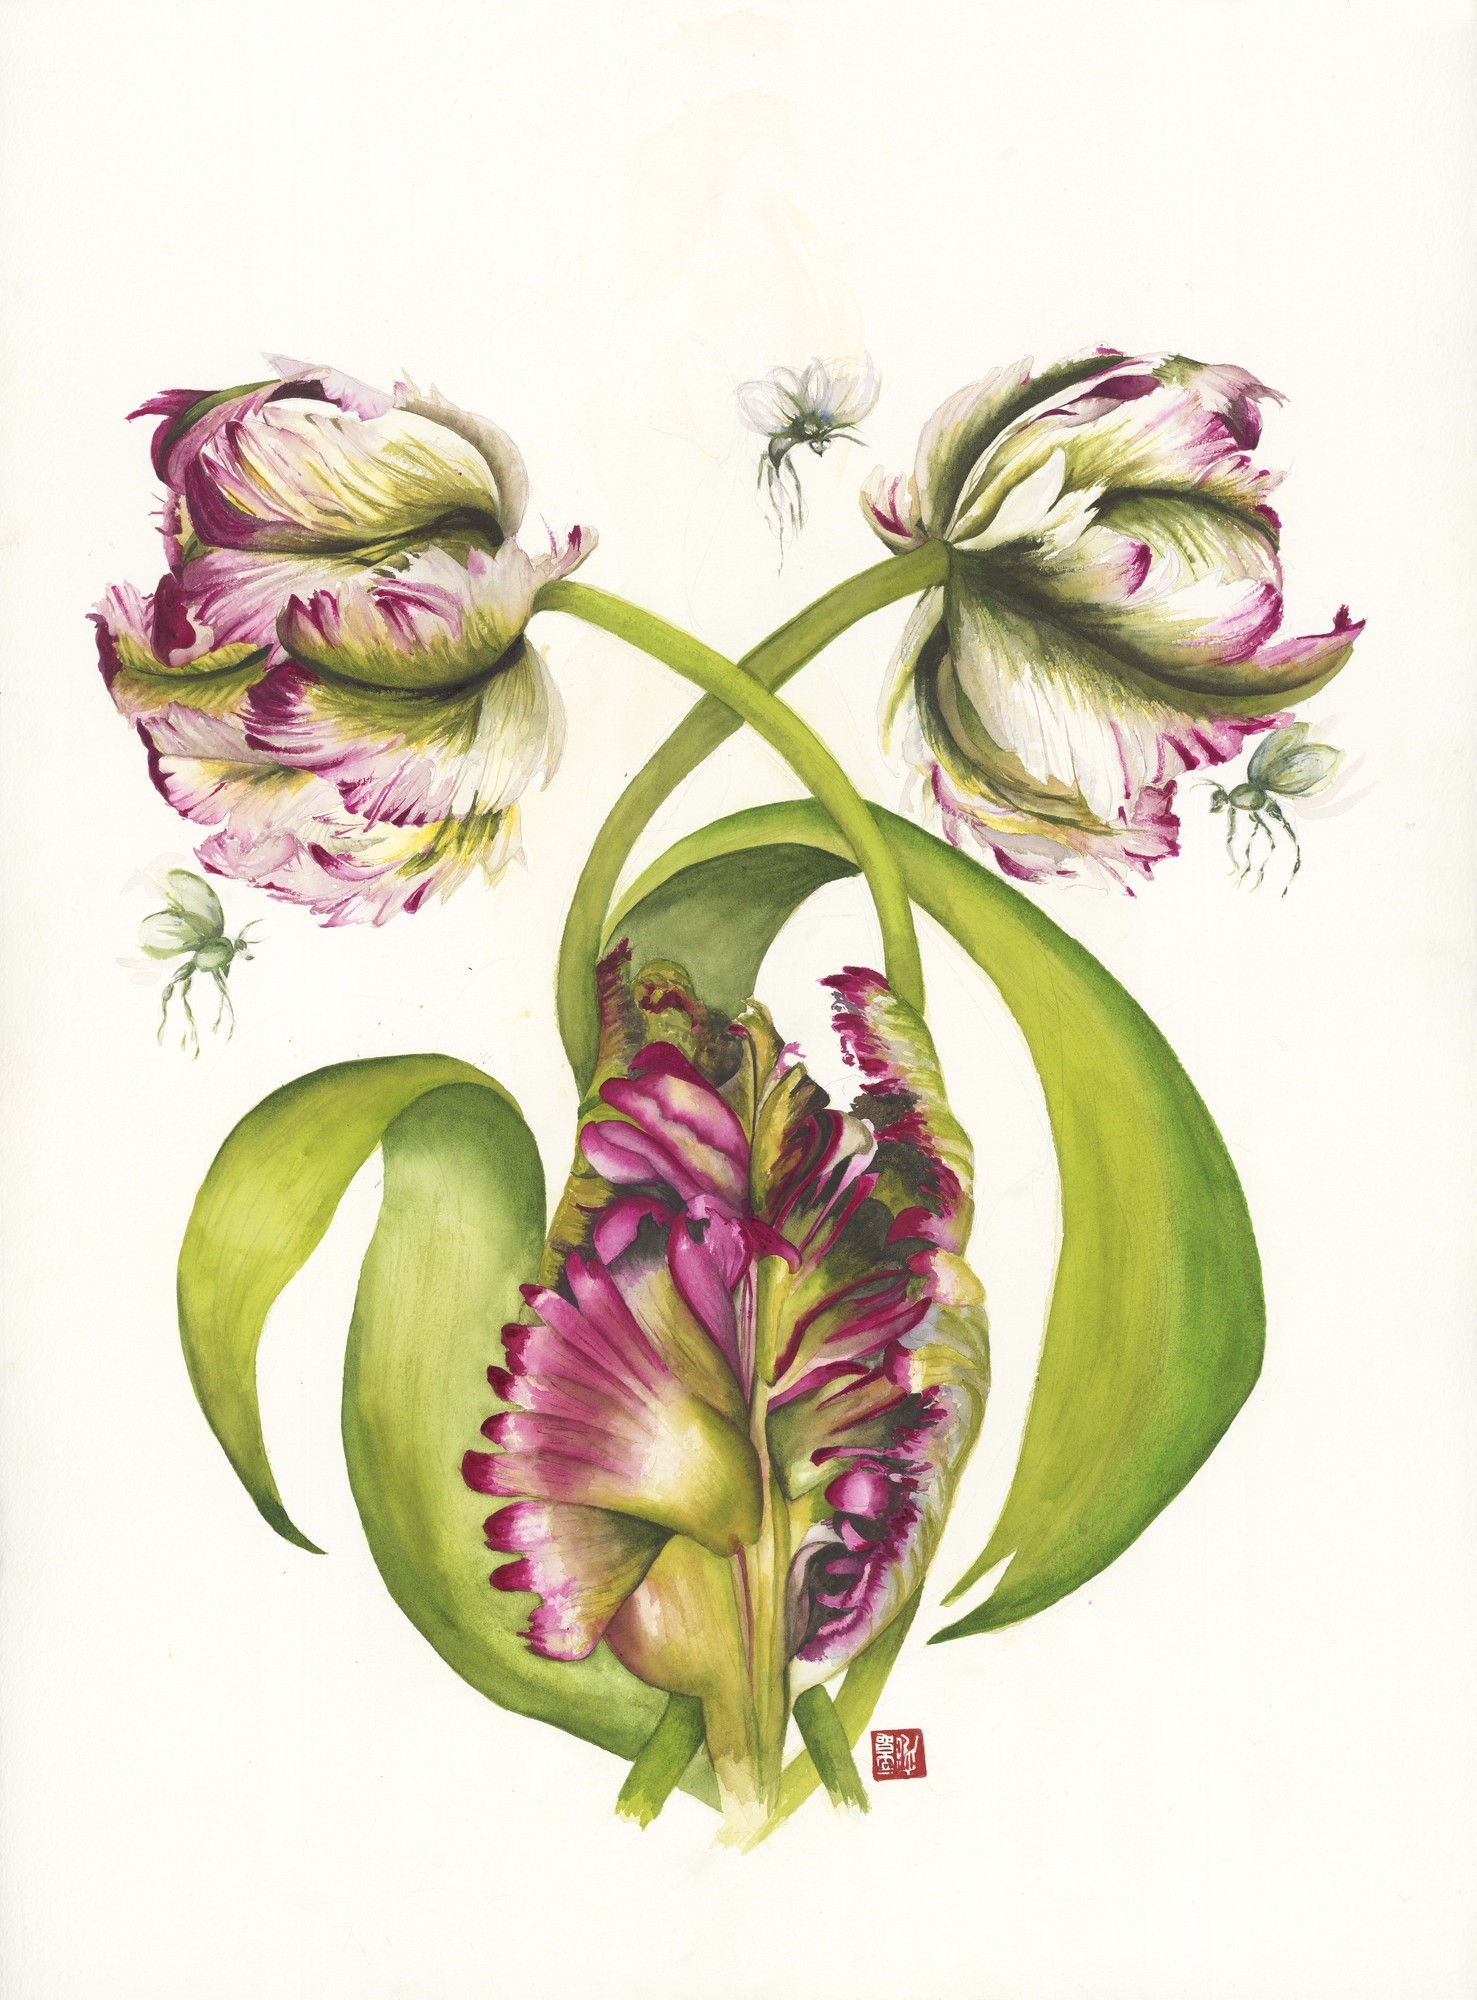 Lorna and Victor's Parrot Tulips, 2014